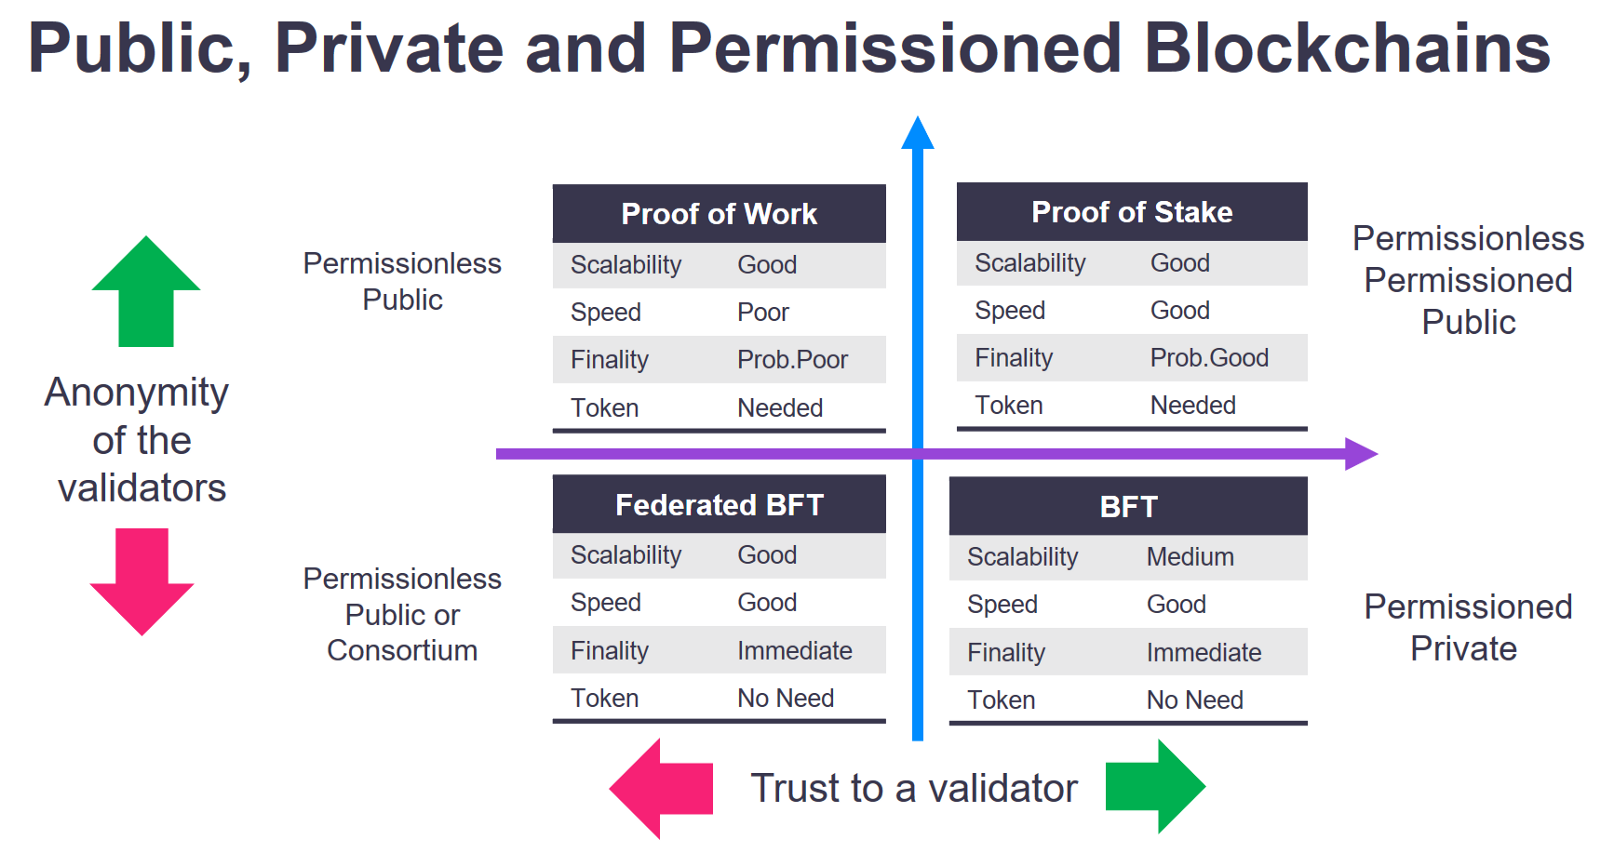 Border And Different Blockchains Are Positioned Differently On The Scale Of Validators Anonymity Trust Public Blockchain Needs Good Scalability